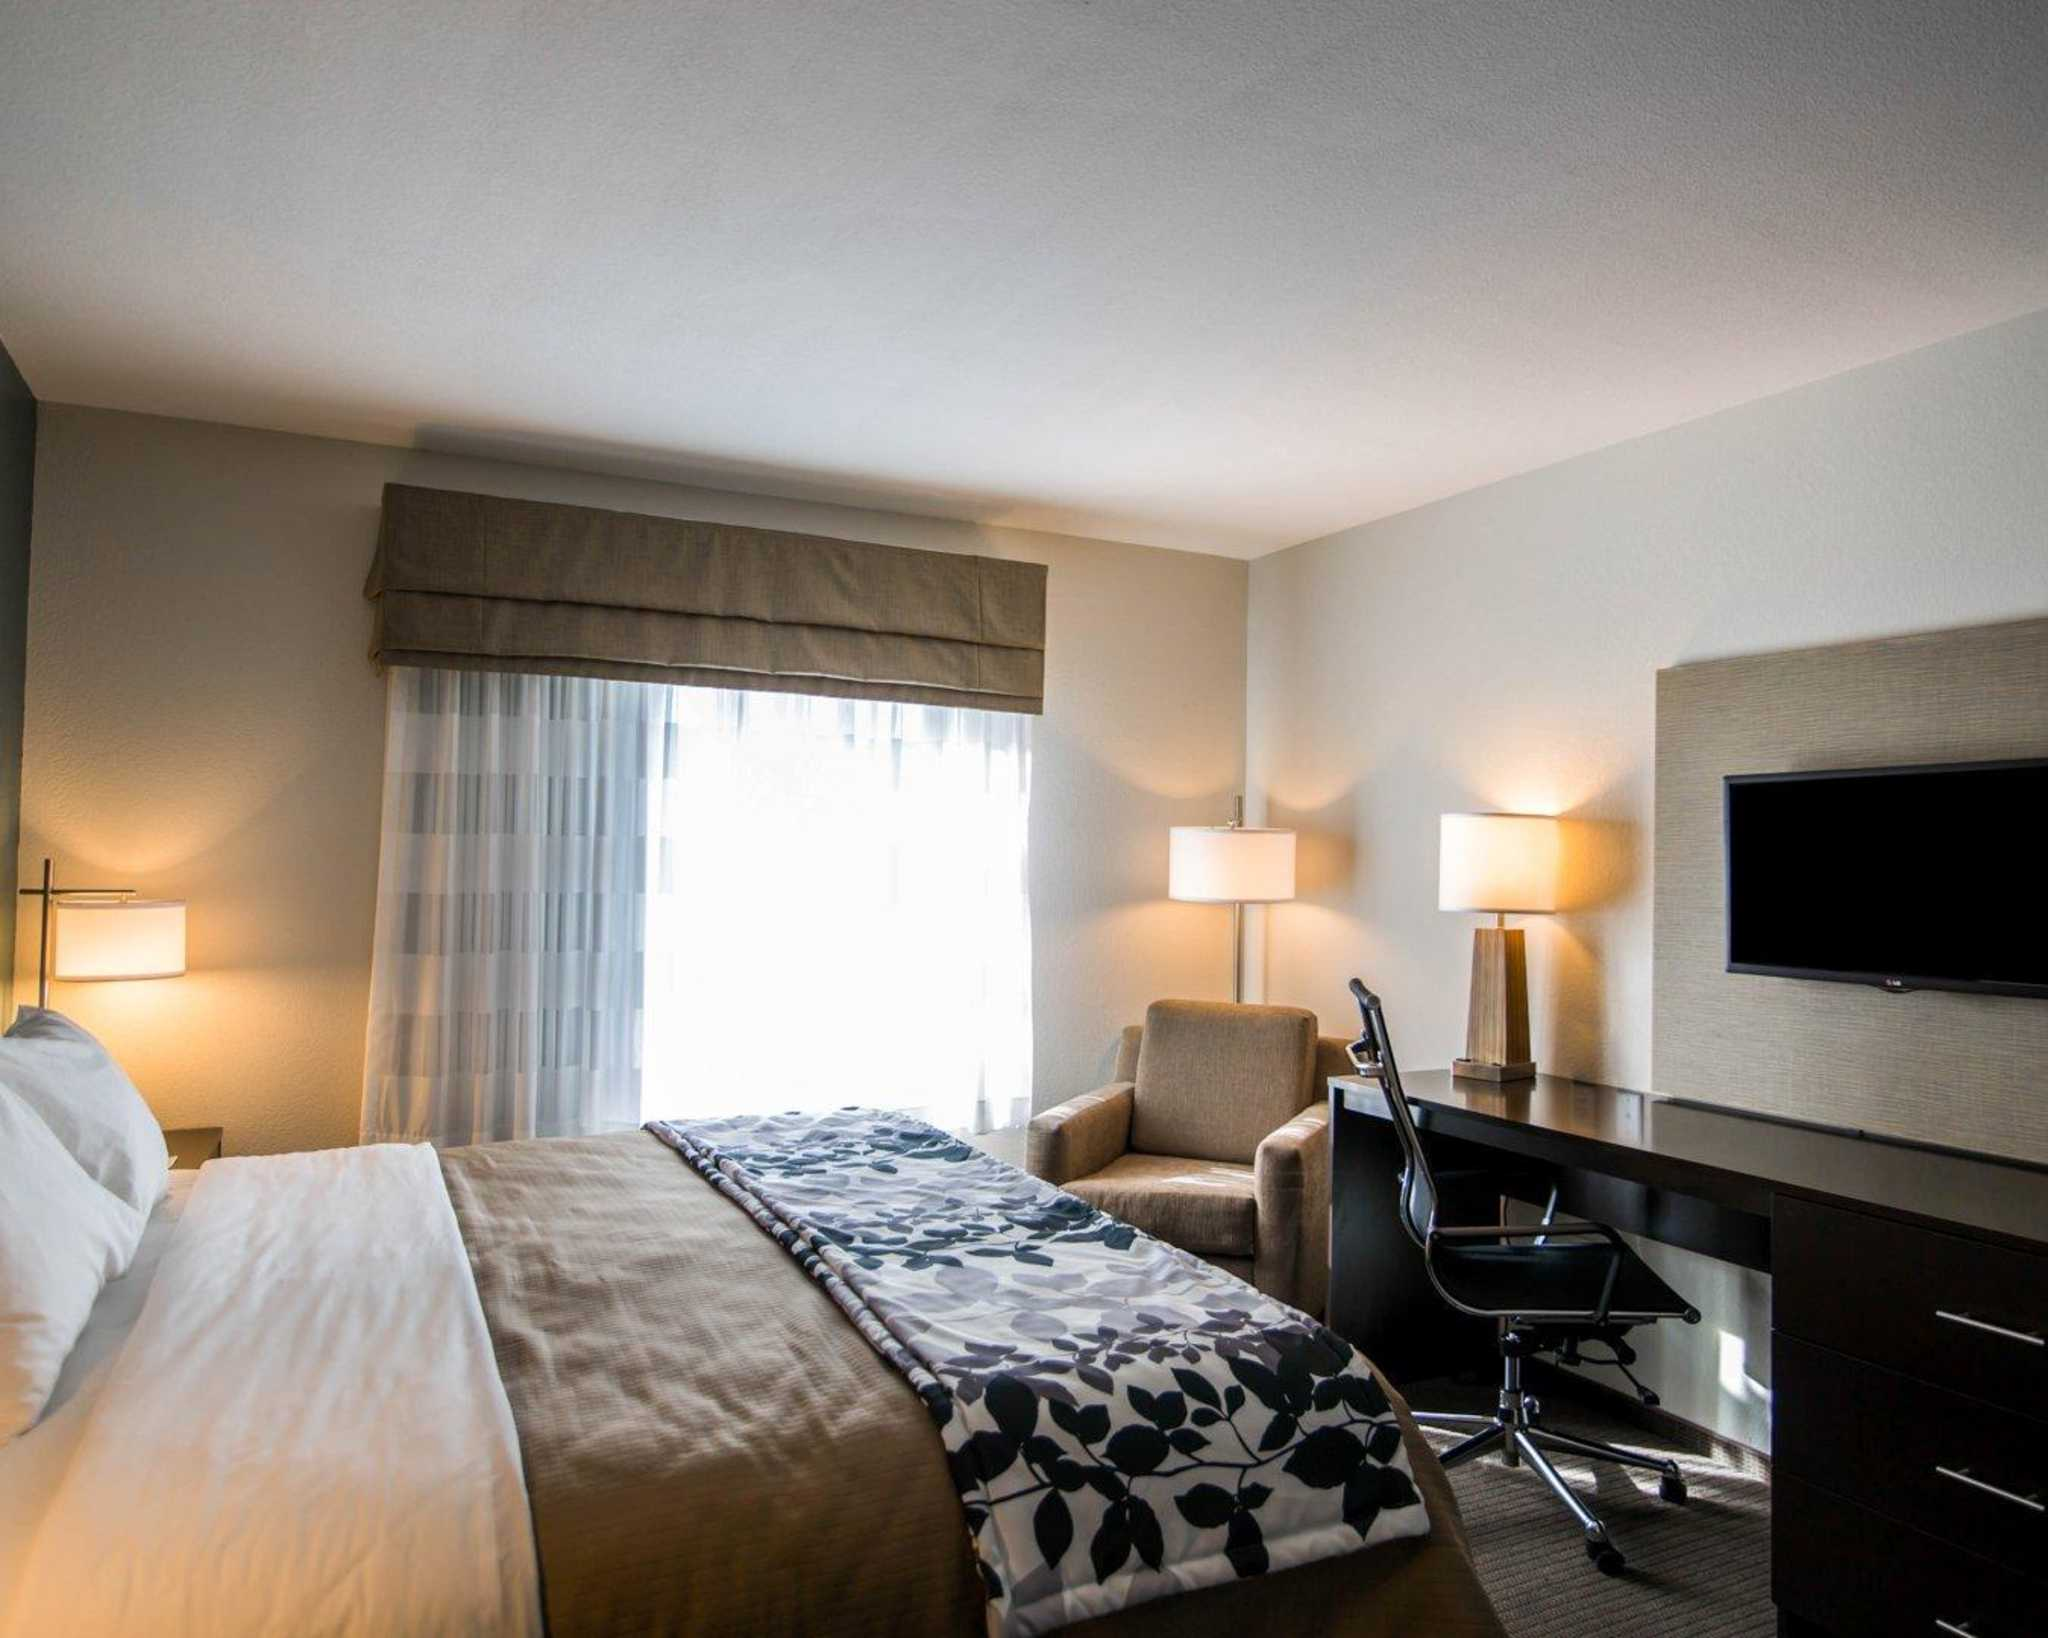 Hotel Rooms In Garden City Ks